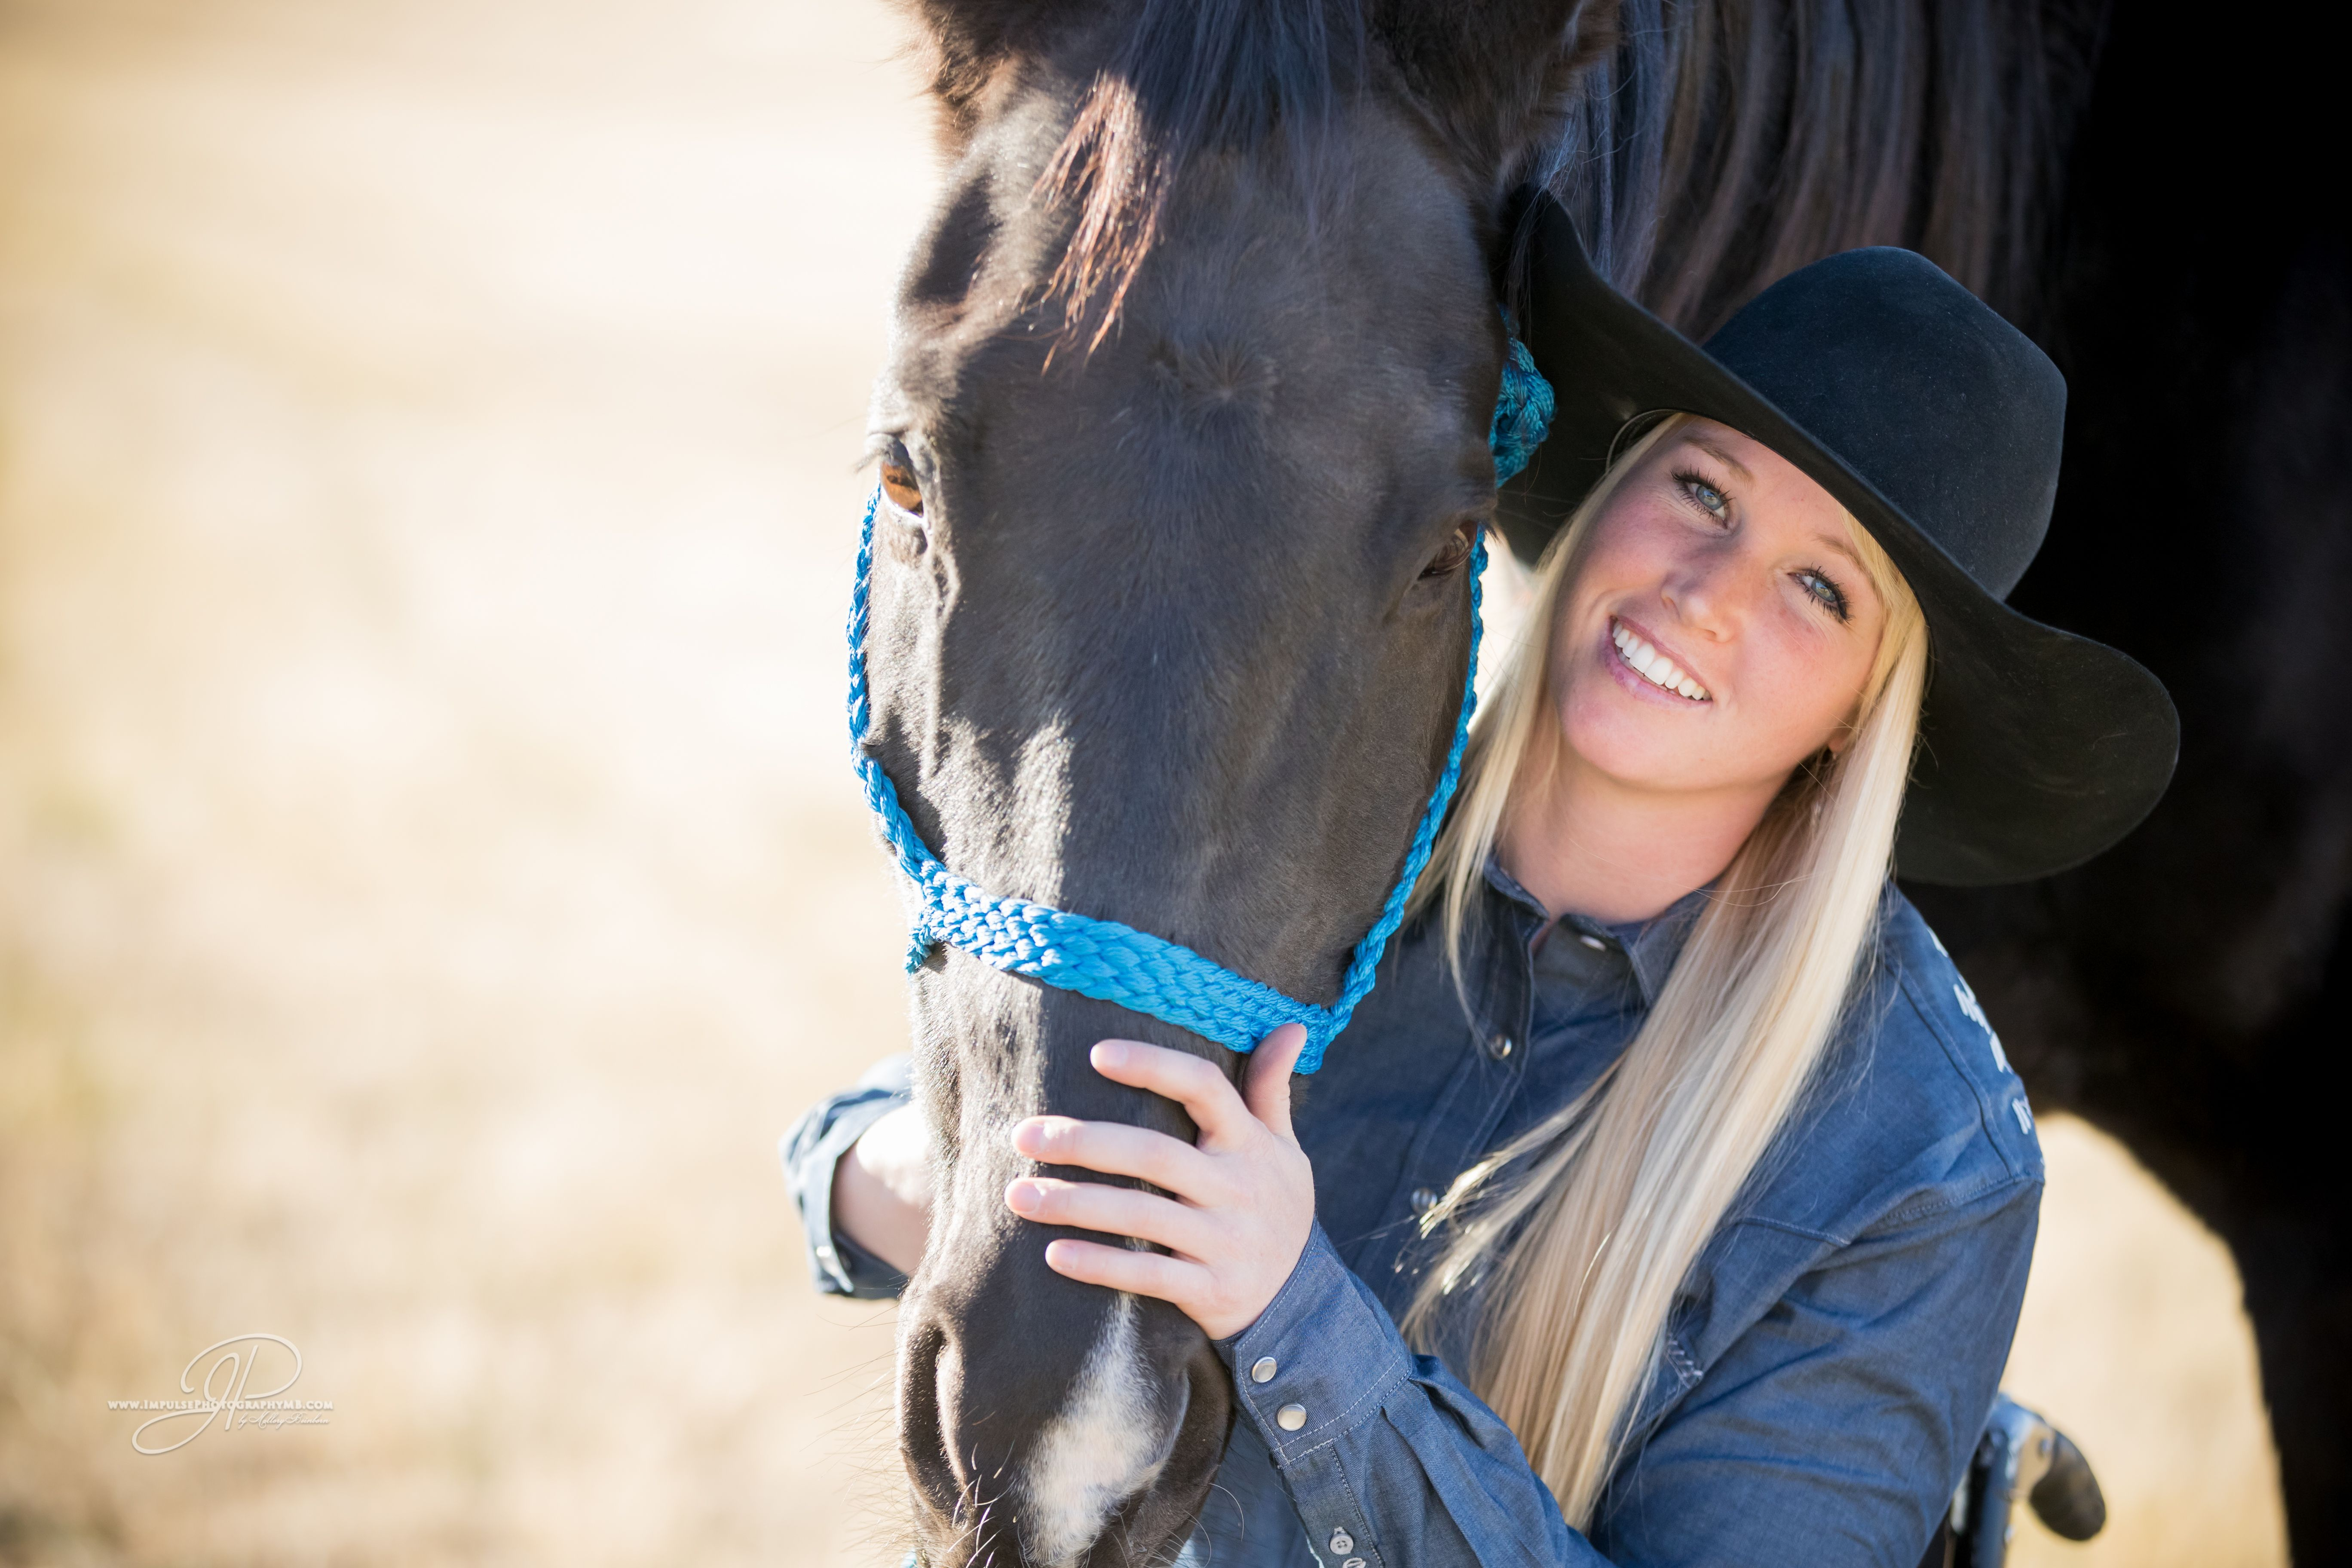 Amberley Snyder to Speak at DCC